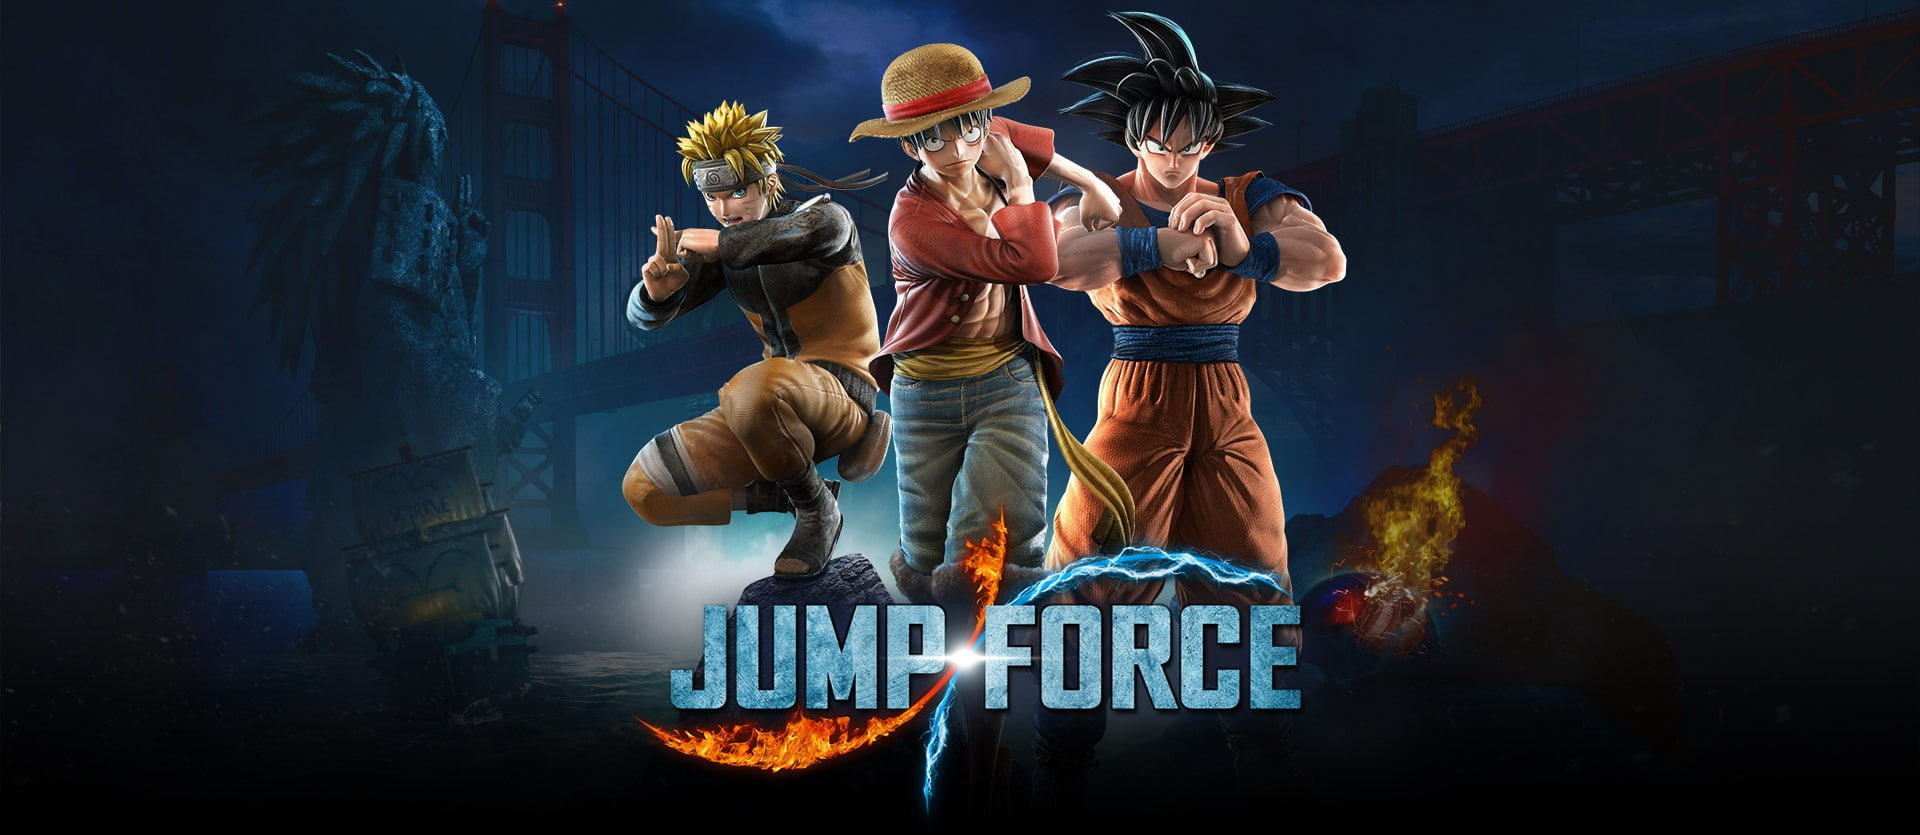 JUMP FORCE PS3 Full Version Free Download · FrontLine Gaming